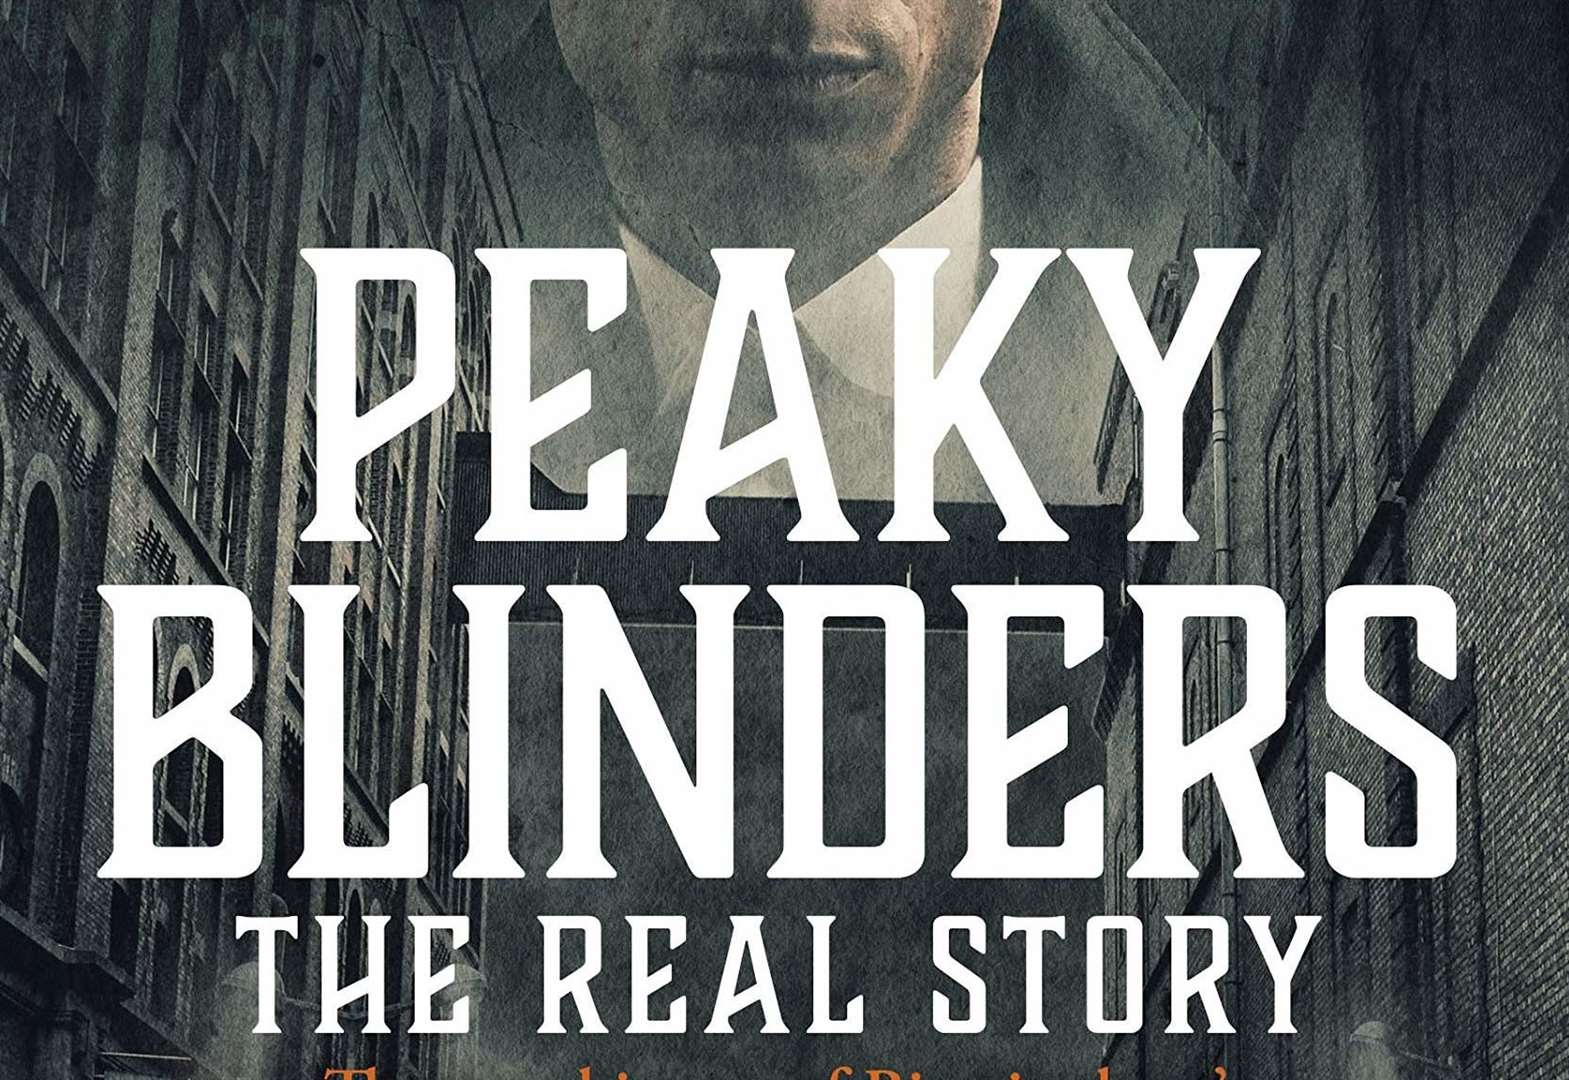 BOOK OF THE WEEK: Peaky Blinders - The Real Story by Carl Chinn